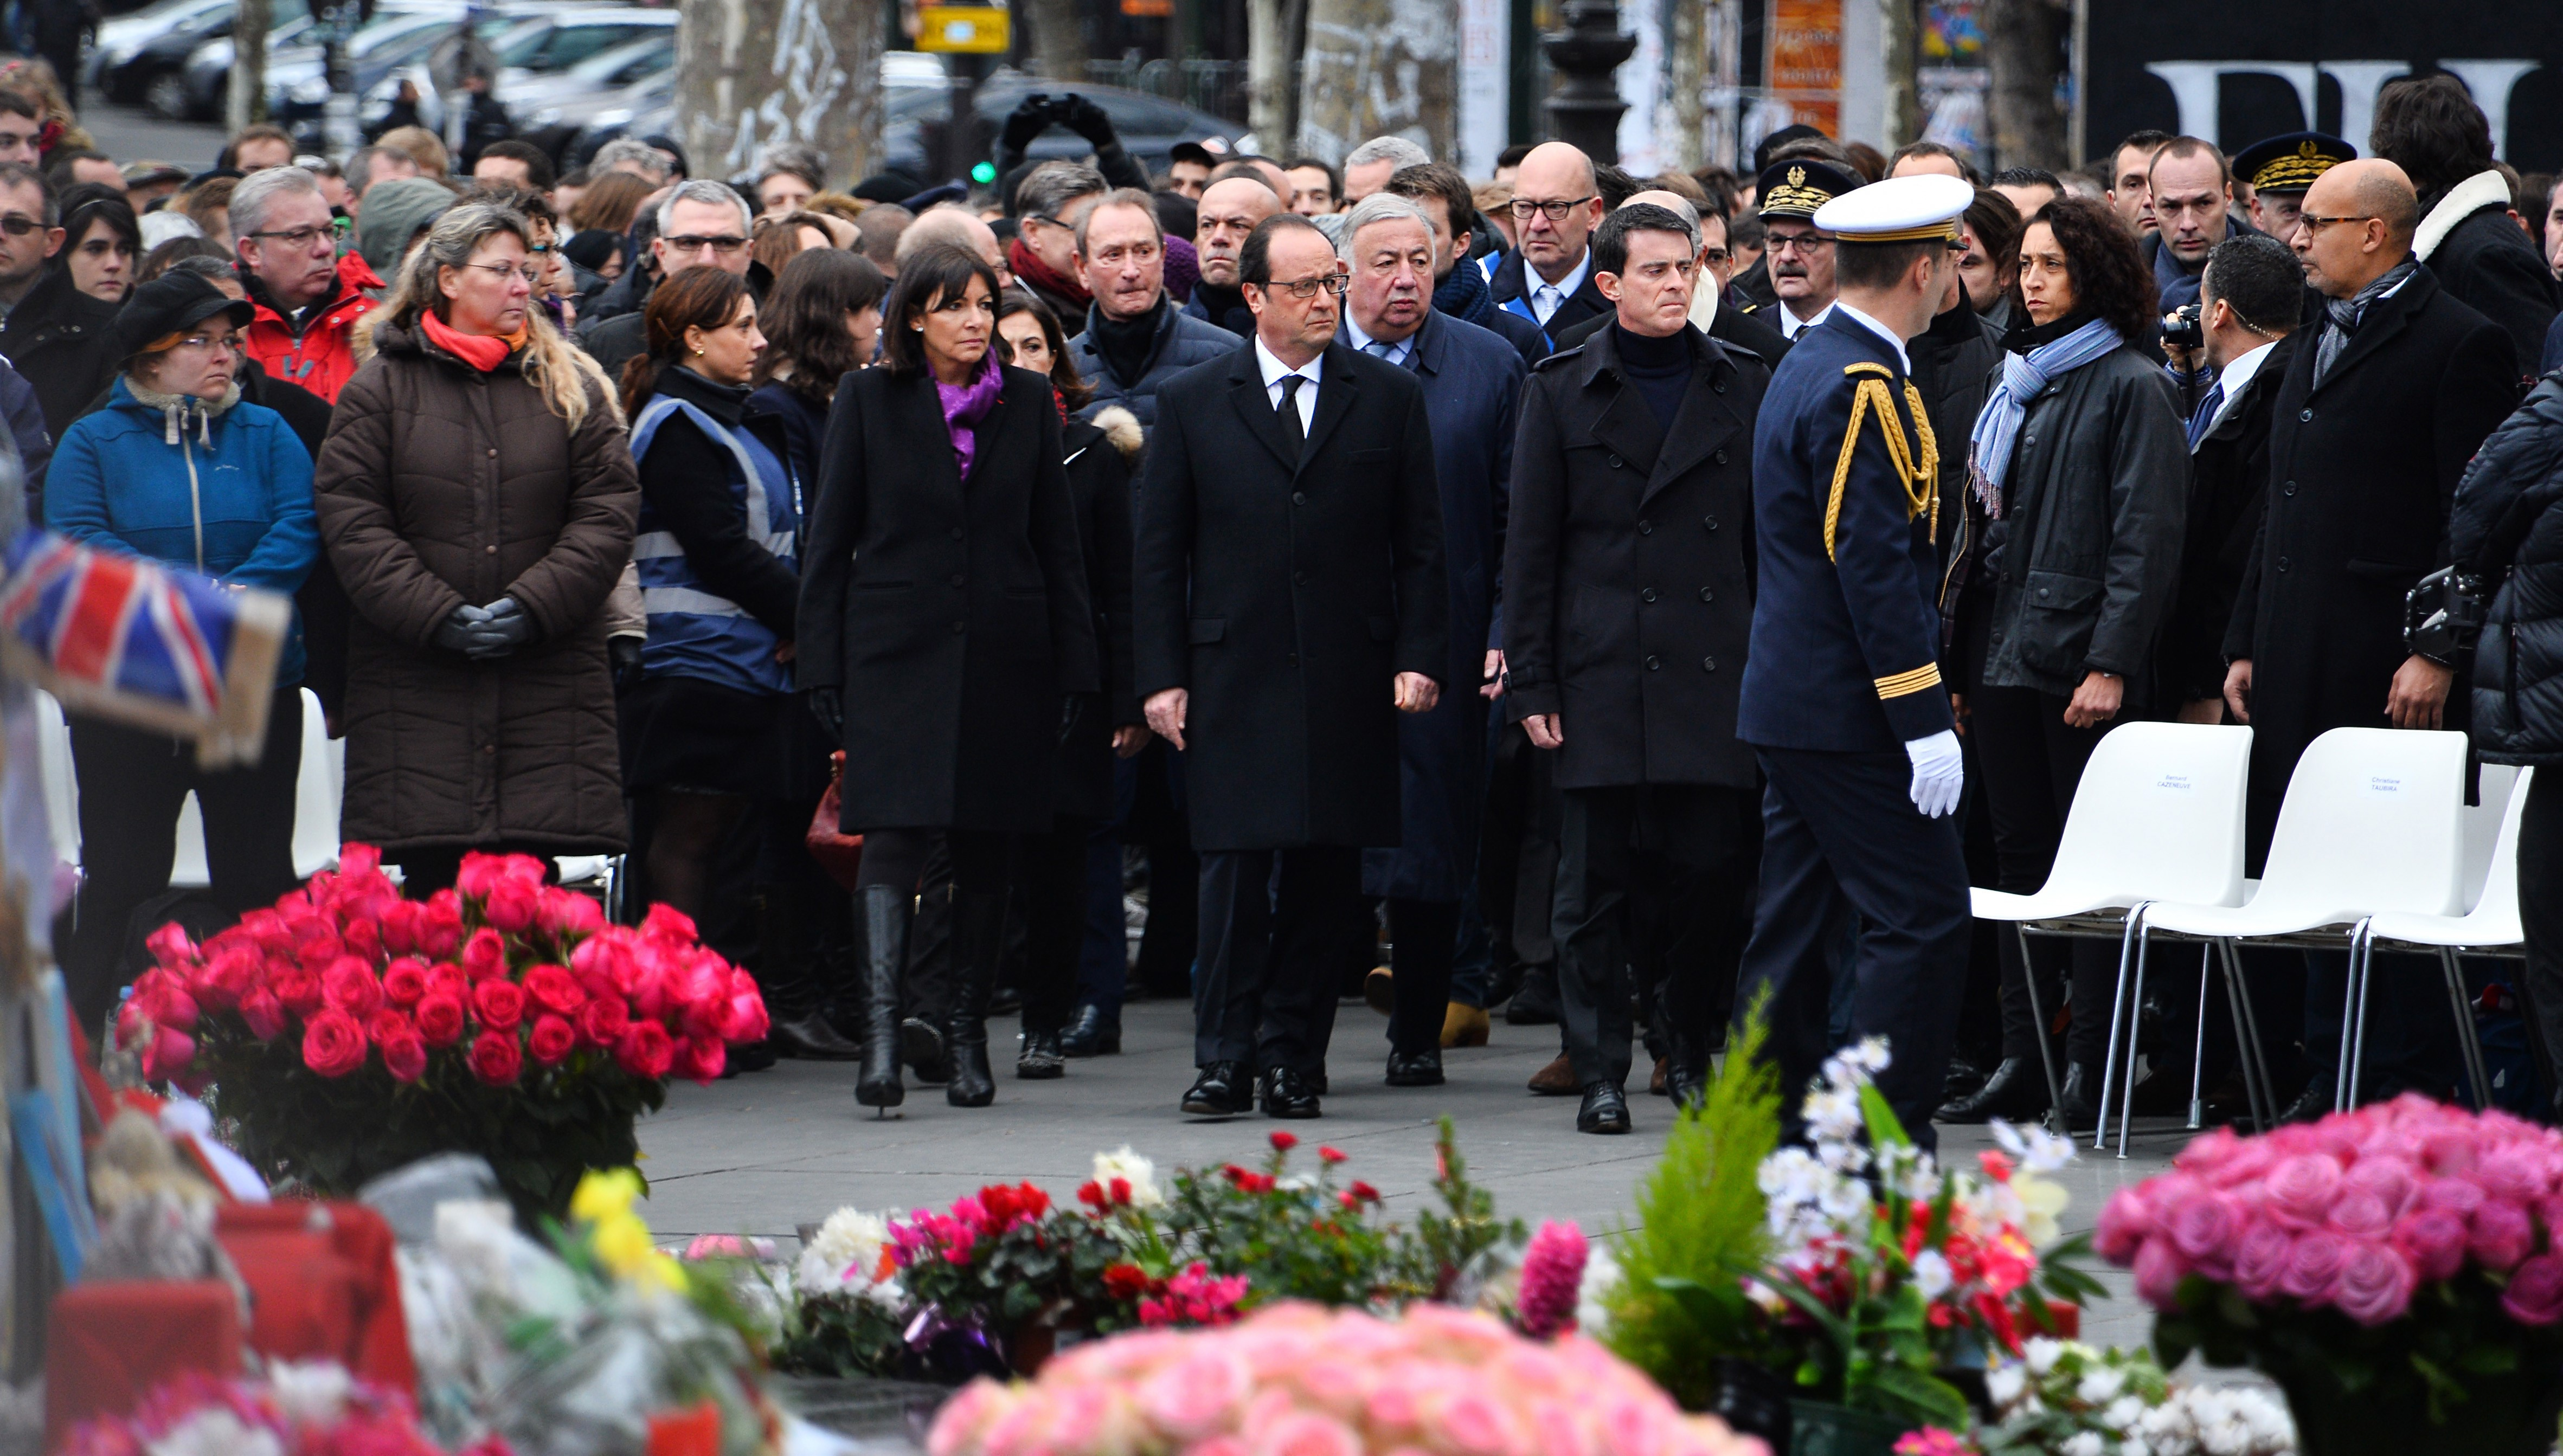 French President Francois Hollande attends a commemoration ceremony rally for Charlie Hebdo attack, at Place de la Republique in Paris on Jan. 10, 2016.